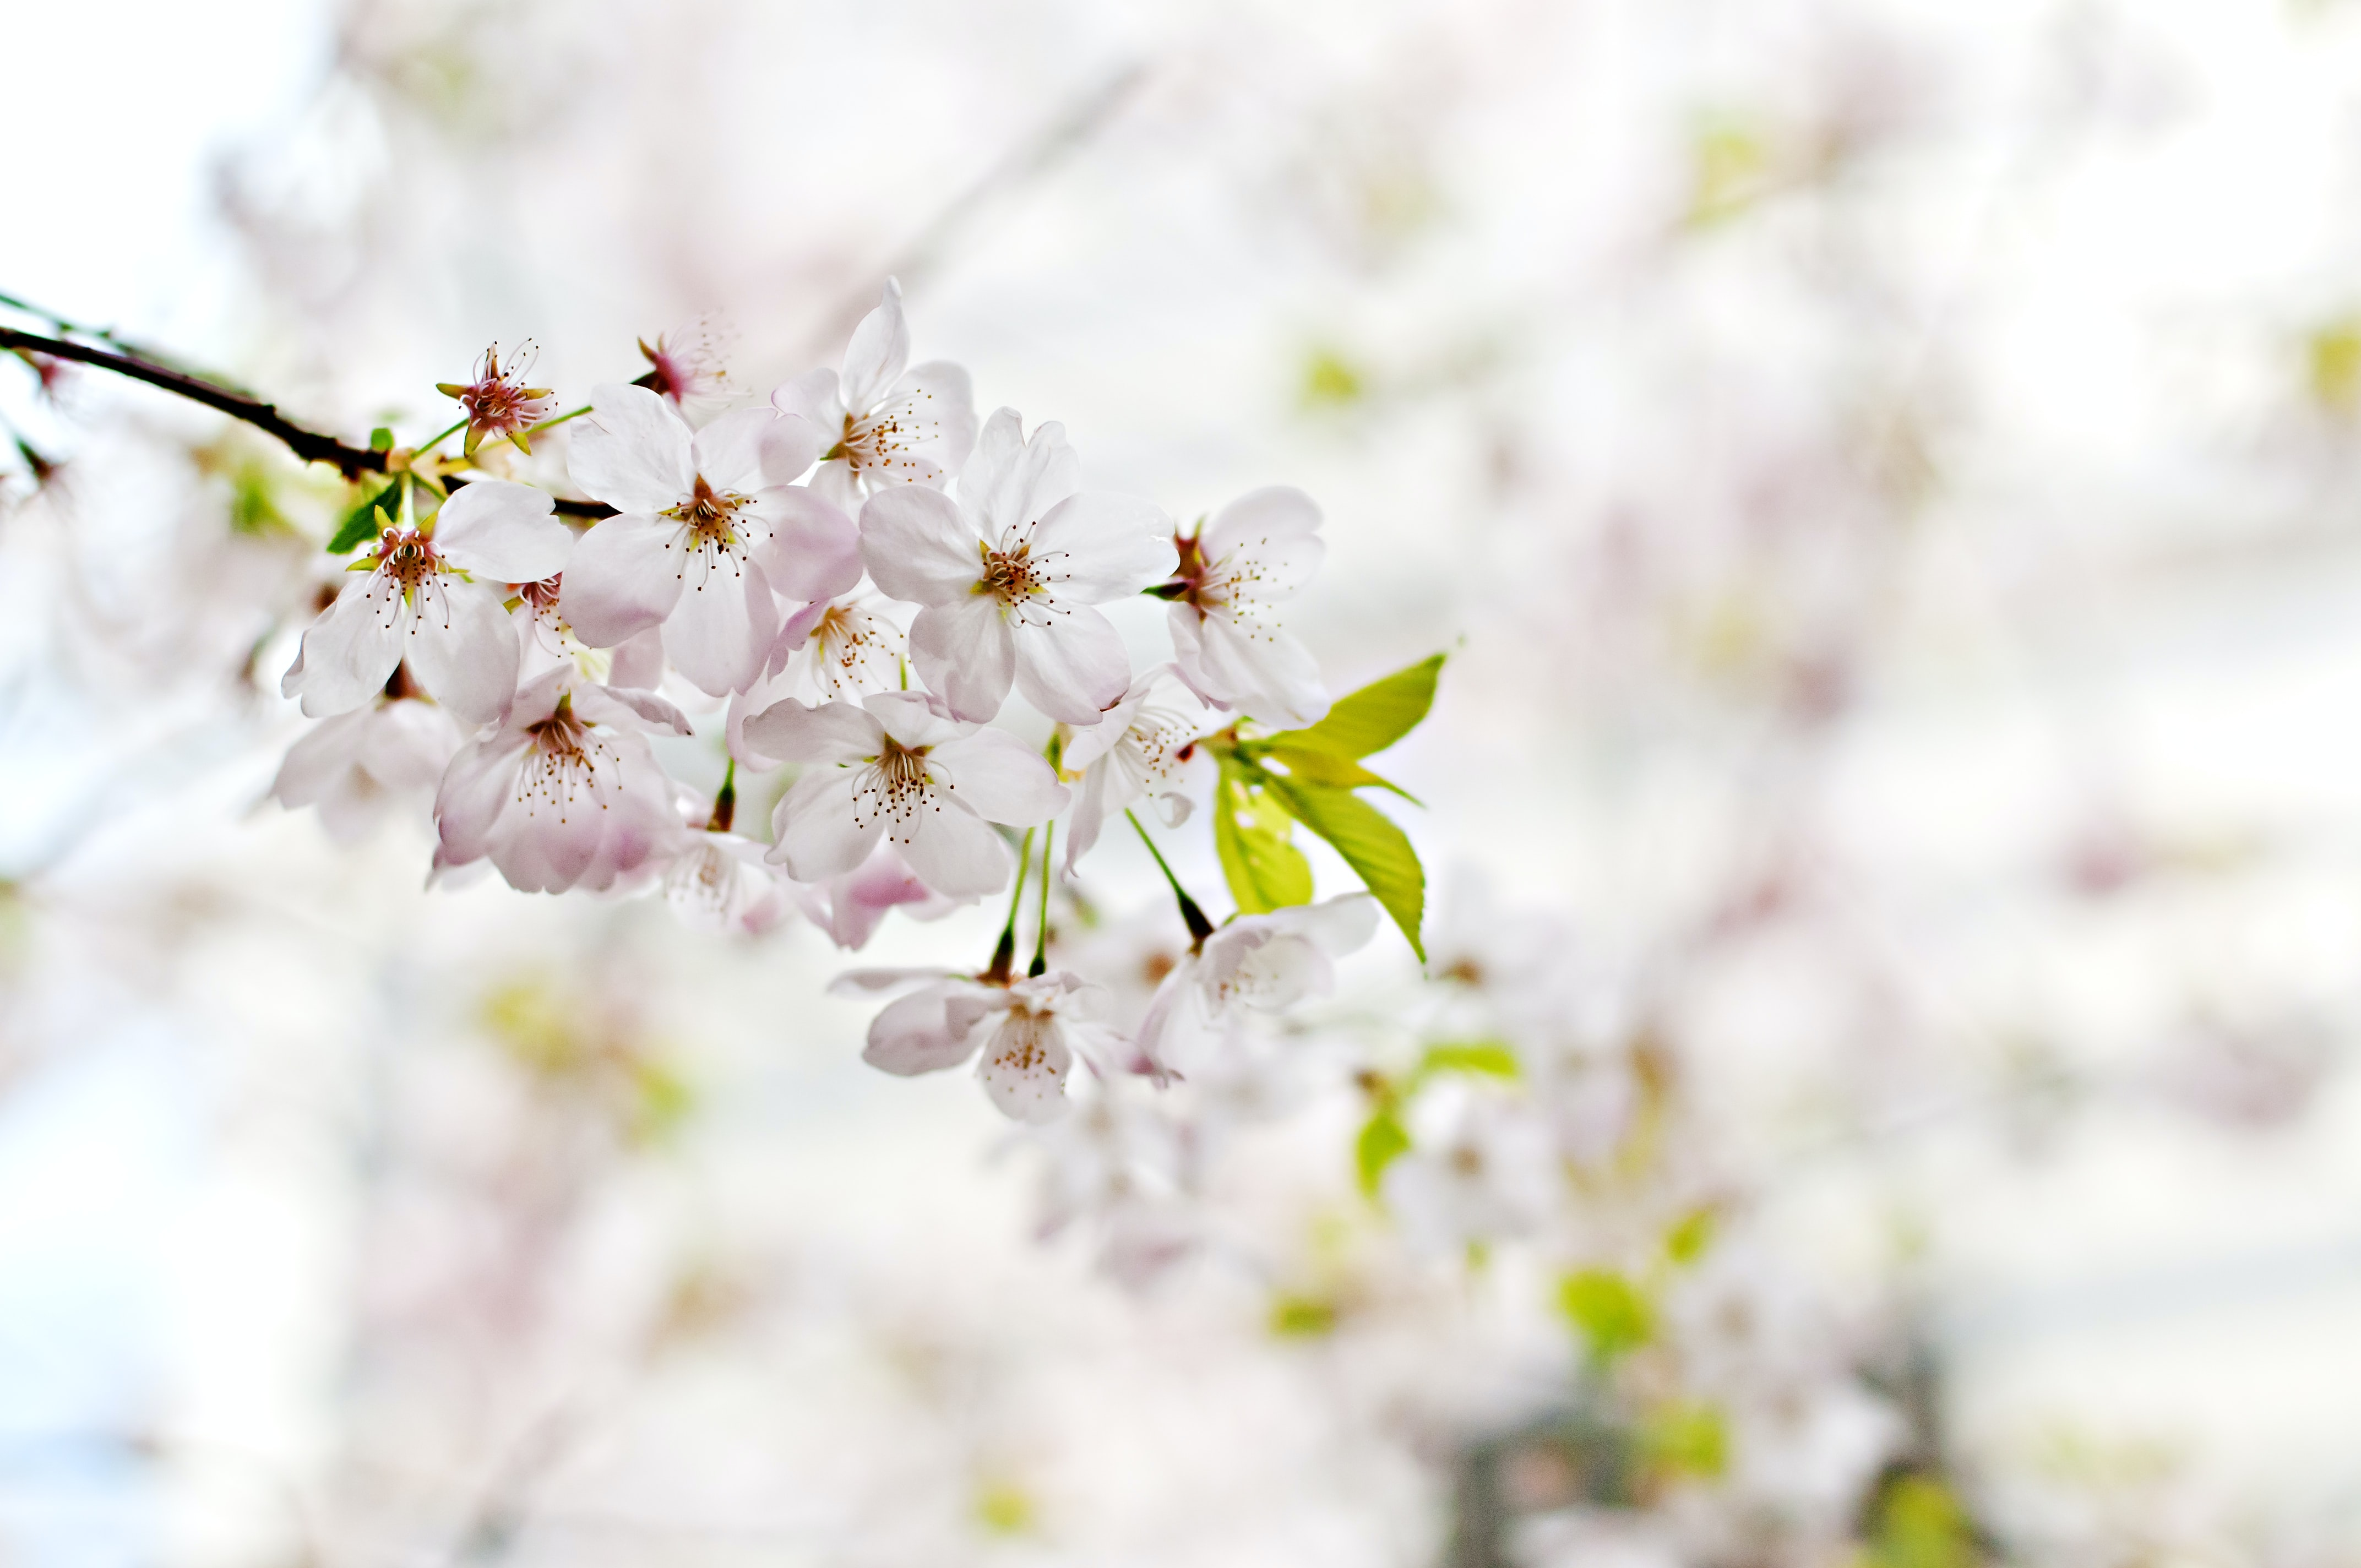 Pink blossom and small green leaves on branch with light background in spring